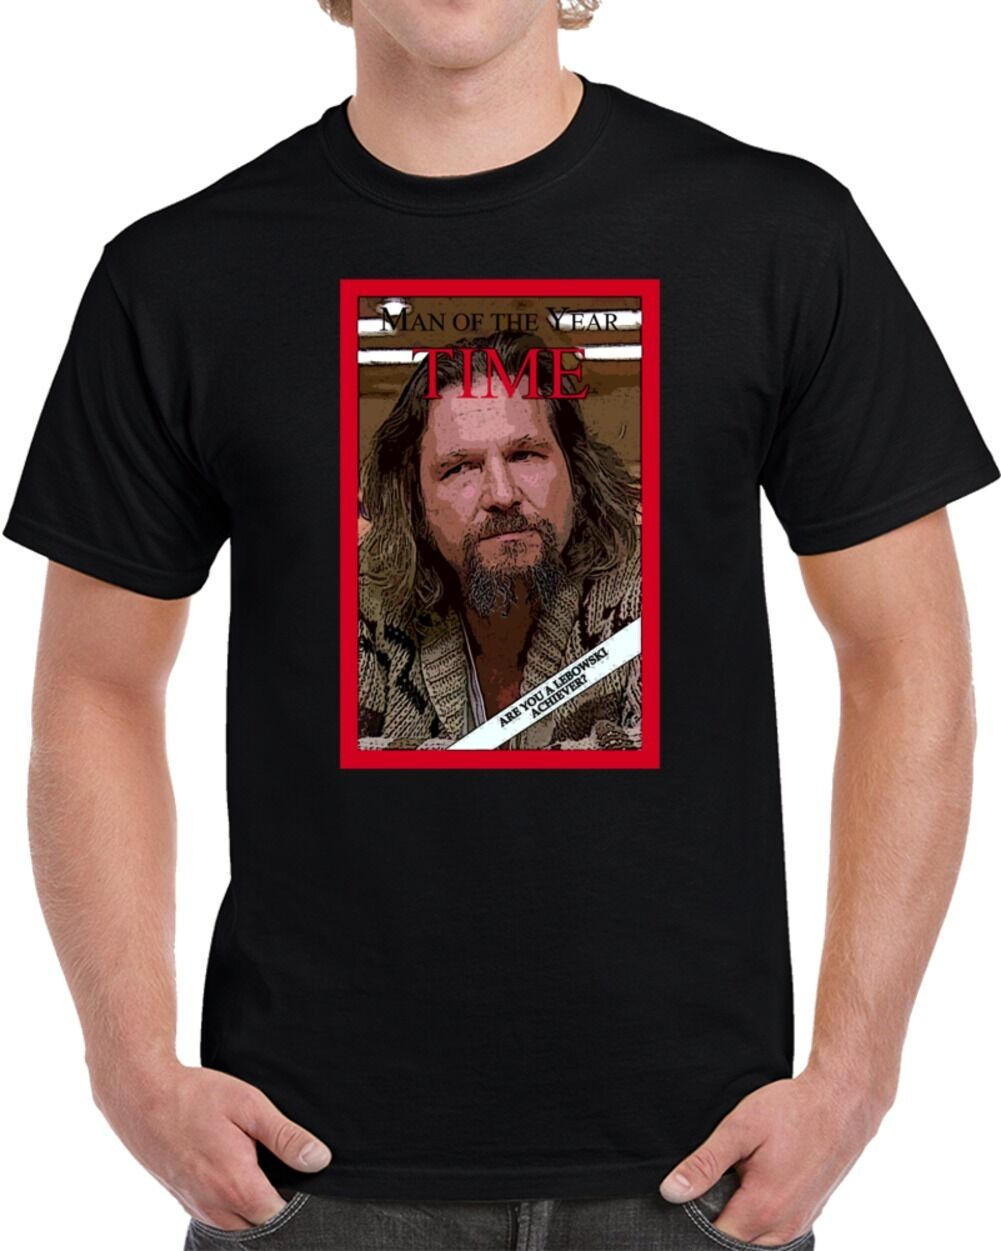 The Big Lebowski The Dude Man of The Year Parody Movie Fan T Shirt New T-Shirt Men Fashion T Shirts Top Tee Plus Size Harajuku image